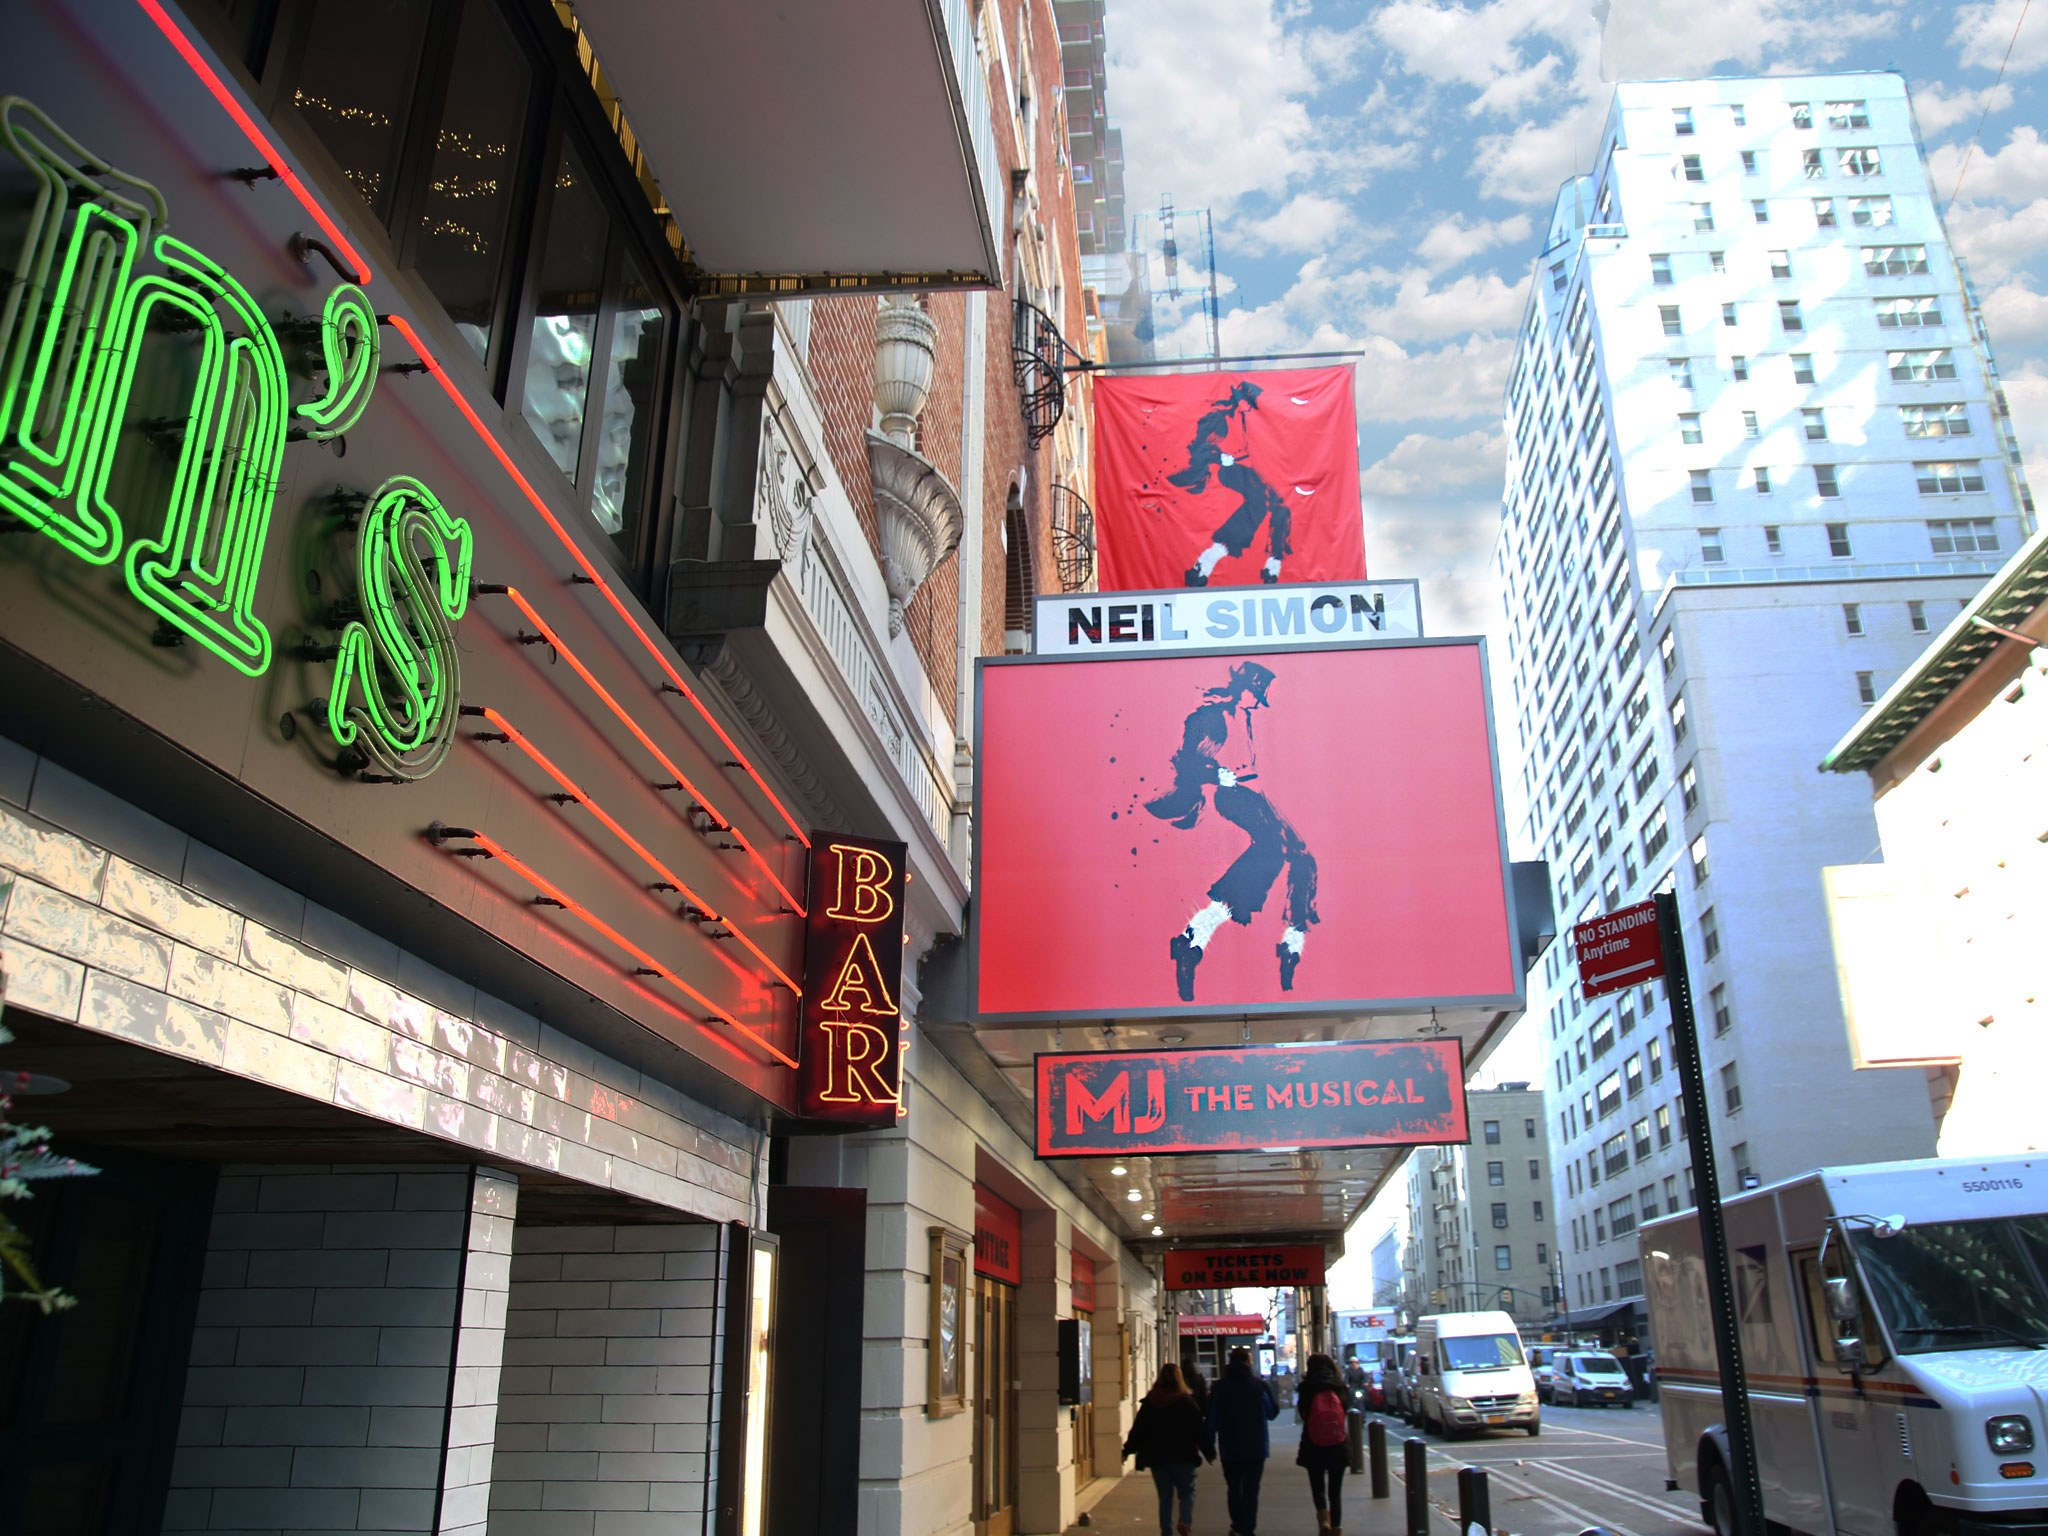 MJ The Musical Marquee at the Neil Simon Theatre